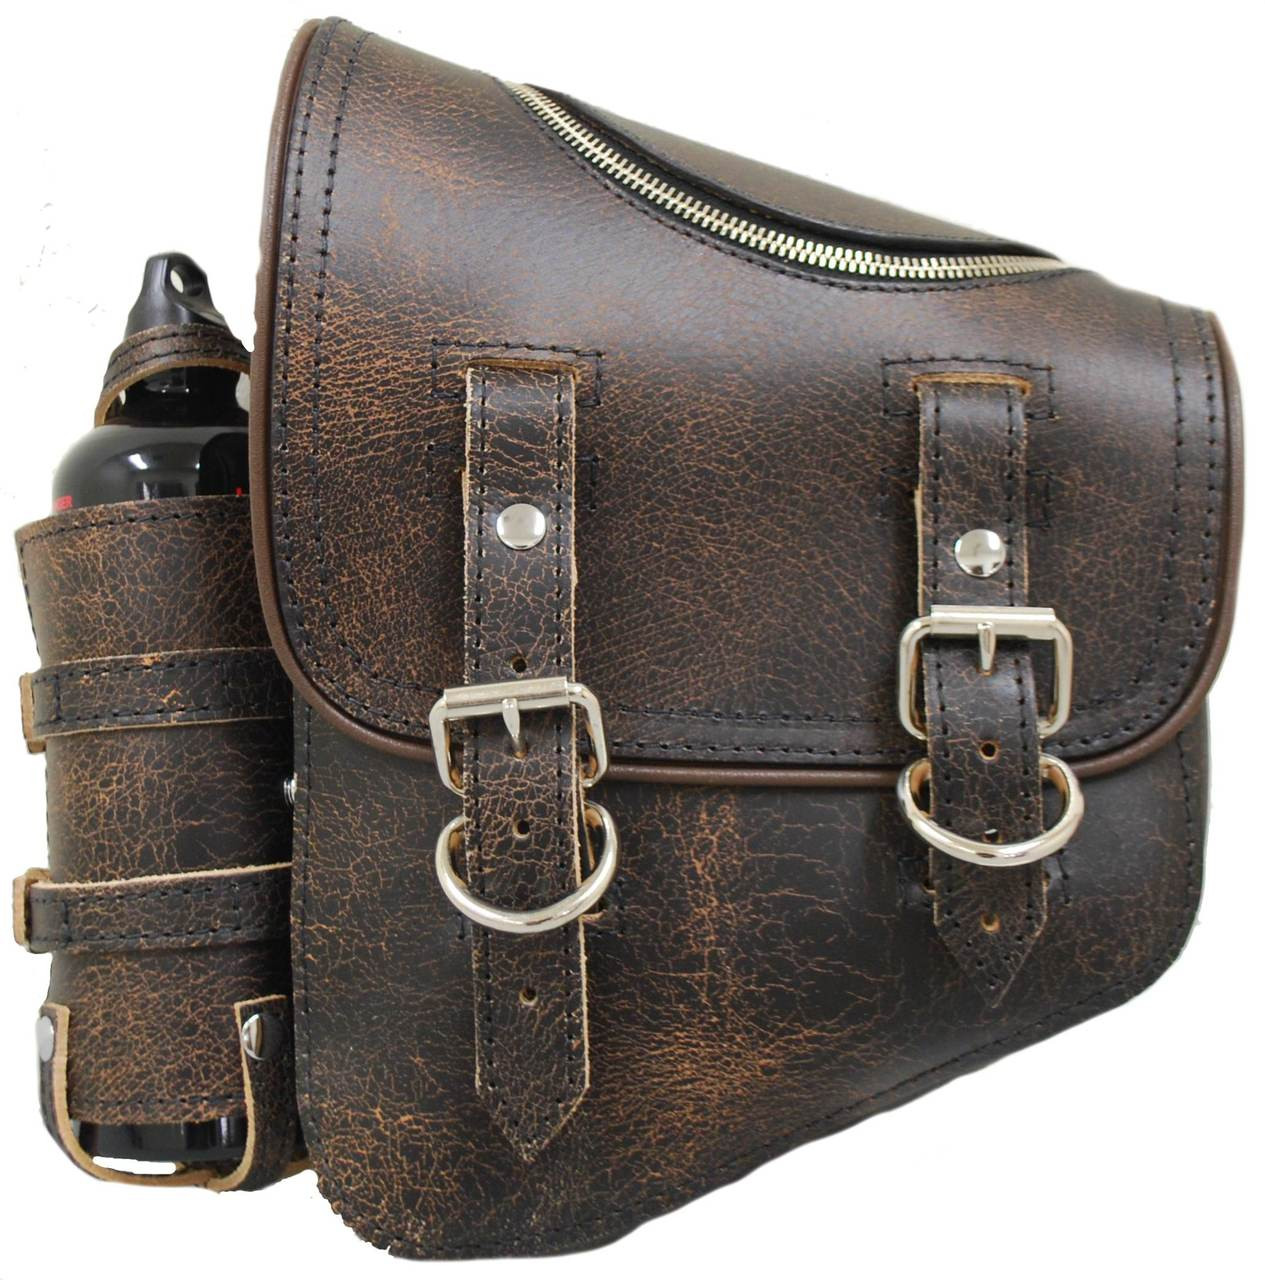 a691fa7c6cc2 ... Harley-Davidson All Softail Models Left Side Solo Saddle Bag Swingarm  Bag Rustic Brown Leather with Zipper and Fuel Bottle Holder. Price    262.99. Image ...